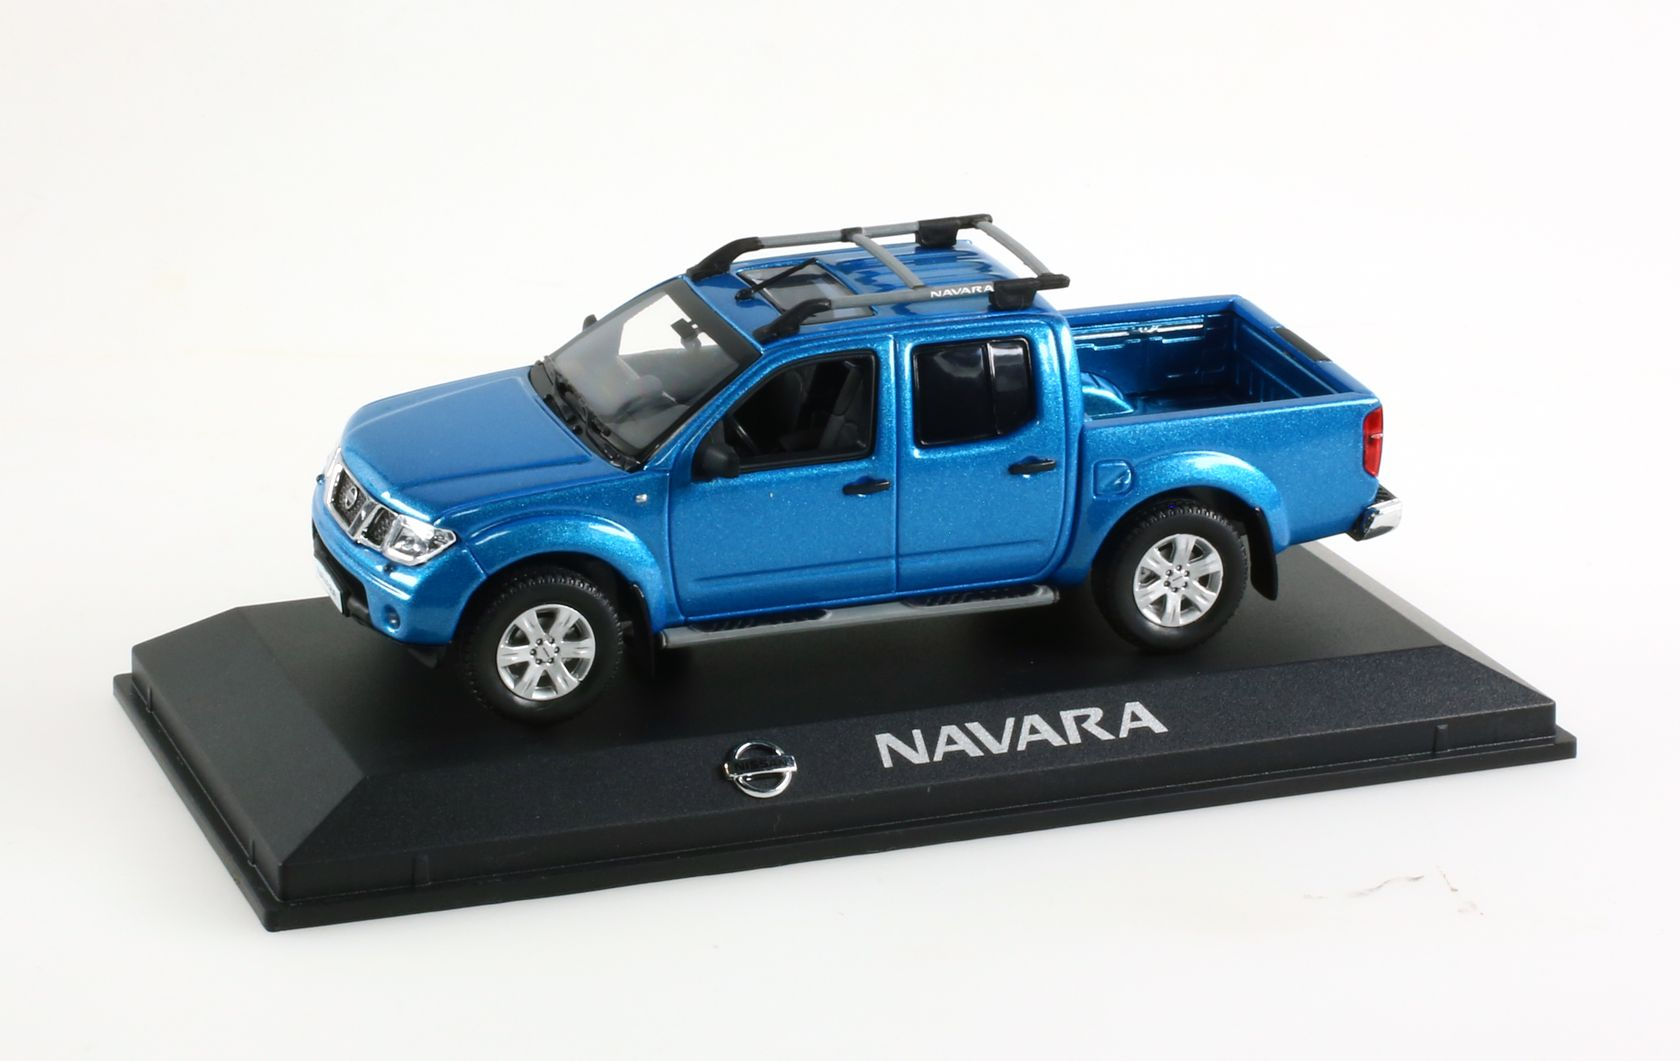 voiture utilitaire miniature nissan navara 1 43 ebay. Black Bedroom Furniture Sets. Home Design Ideas